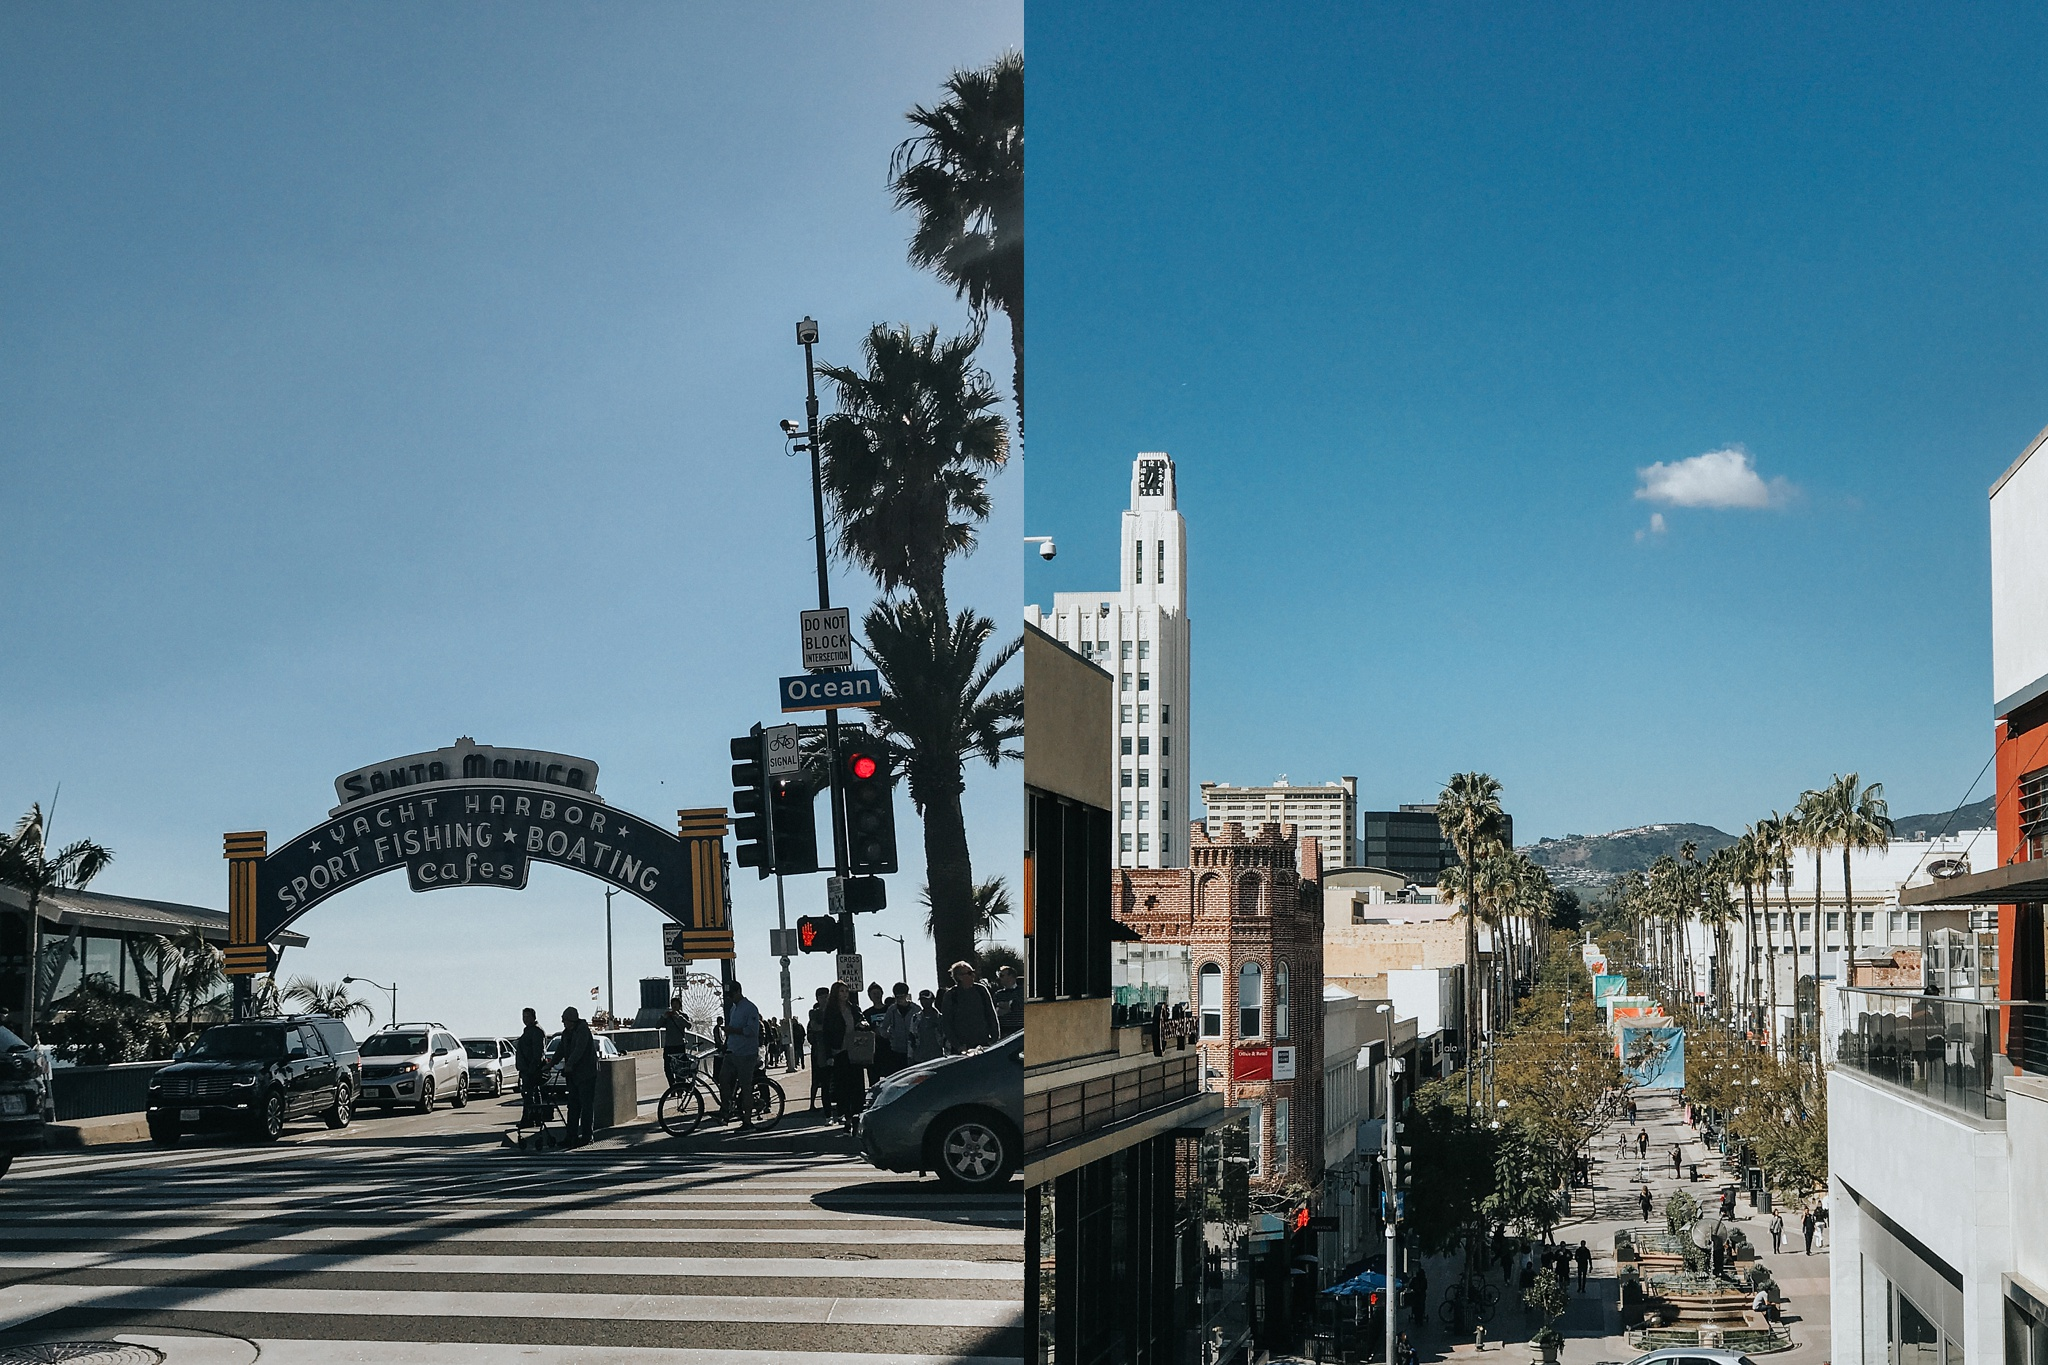 Santa Monica on a blue day is stunning.